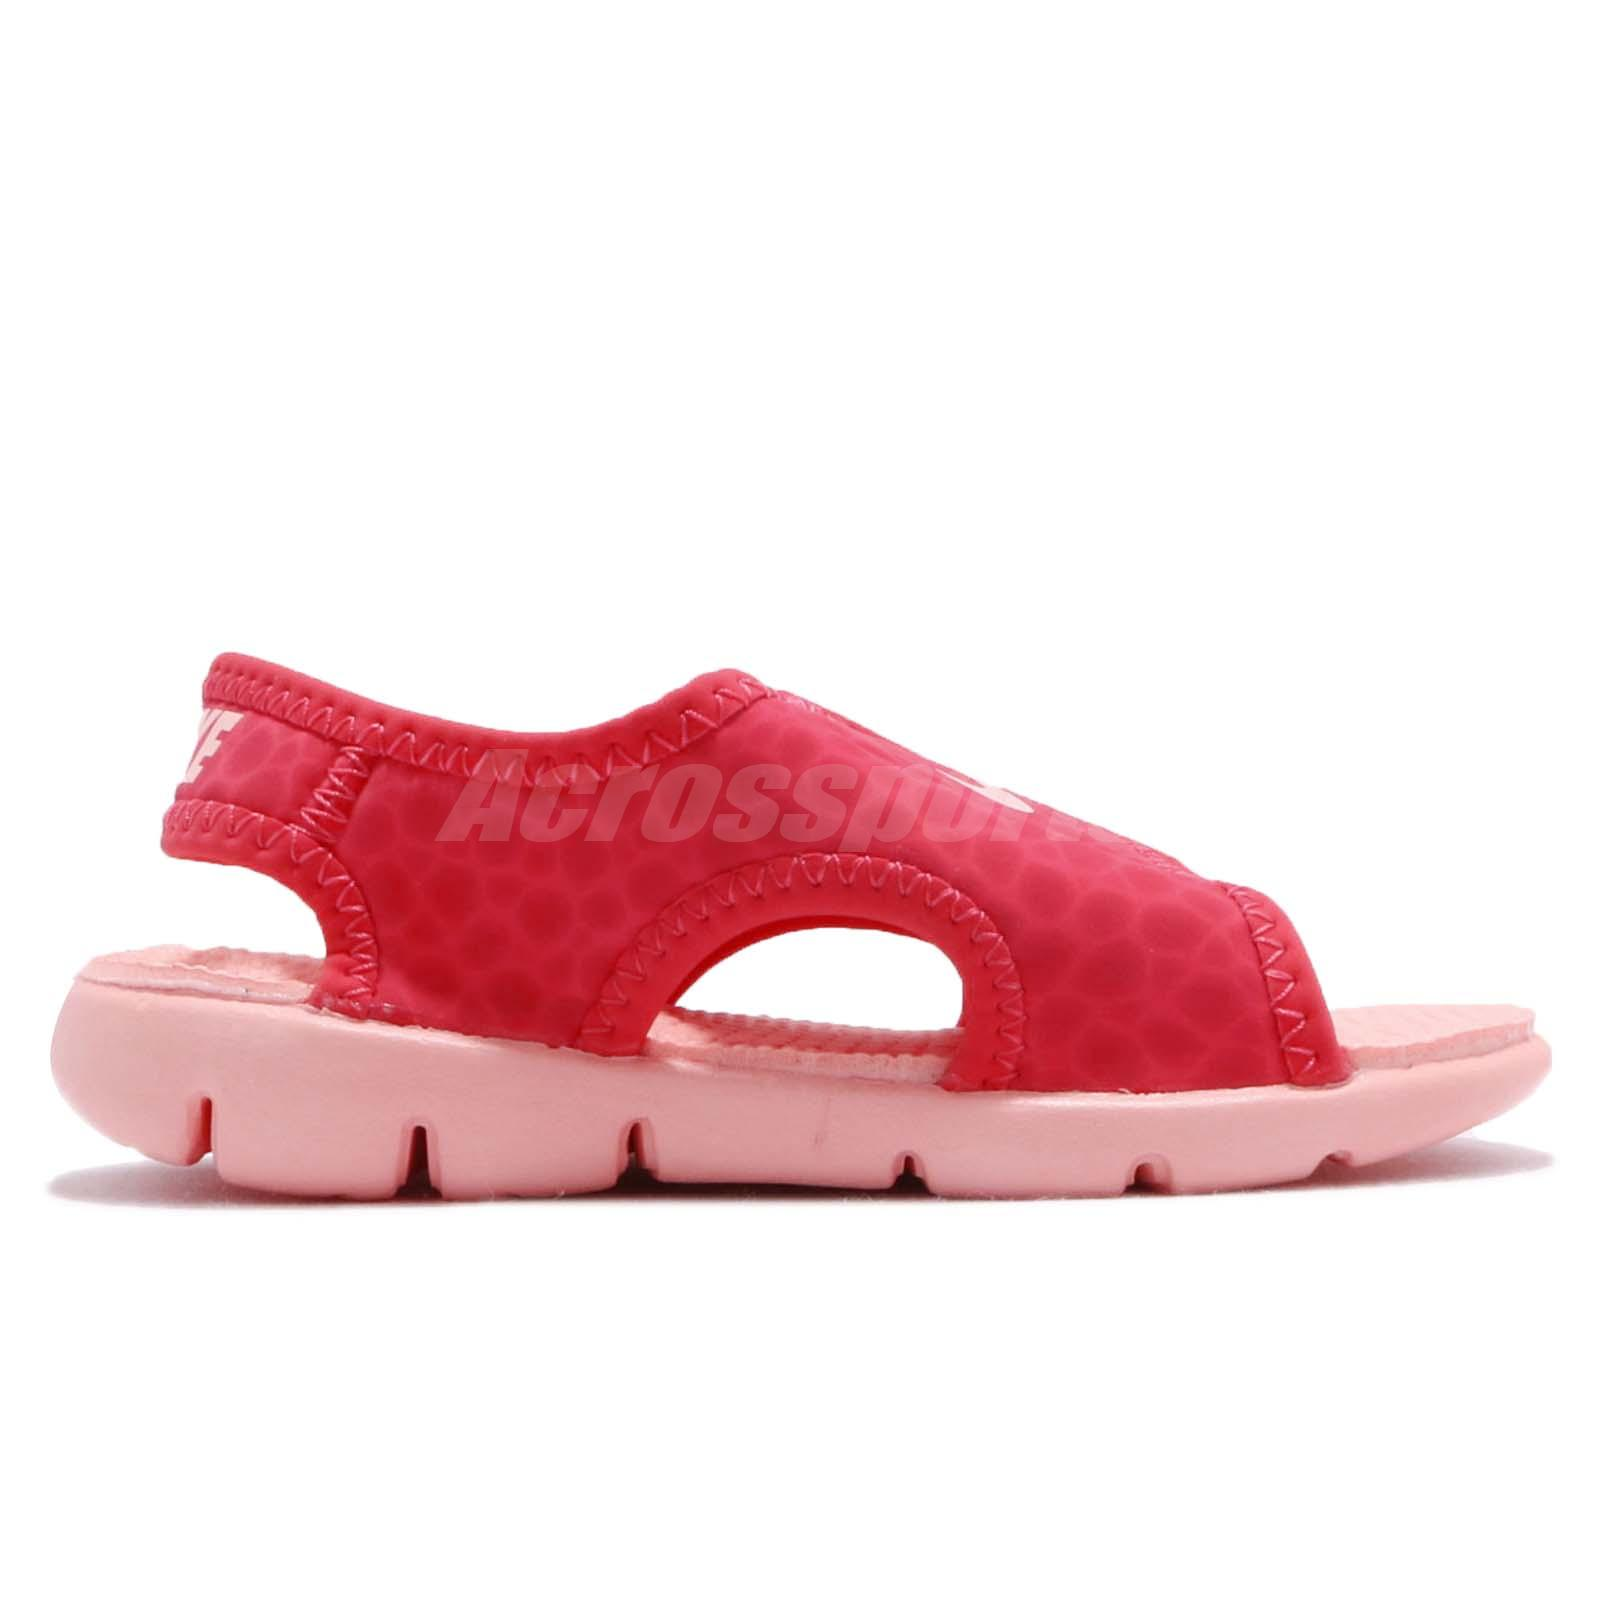 53ffb5c70 Nike Sunray Adjust 4 TD IV Tripocal Pink Red Cleached Coral Toddler ...